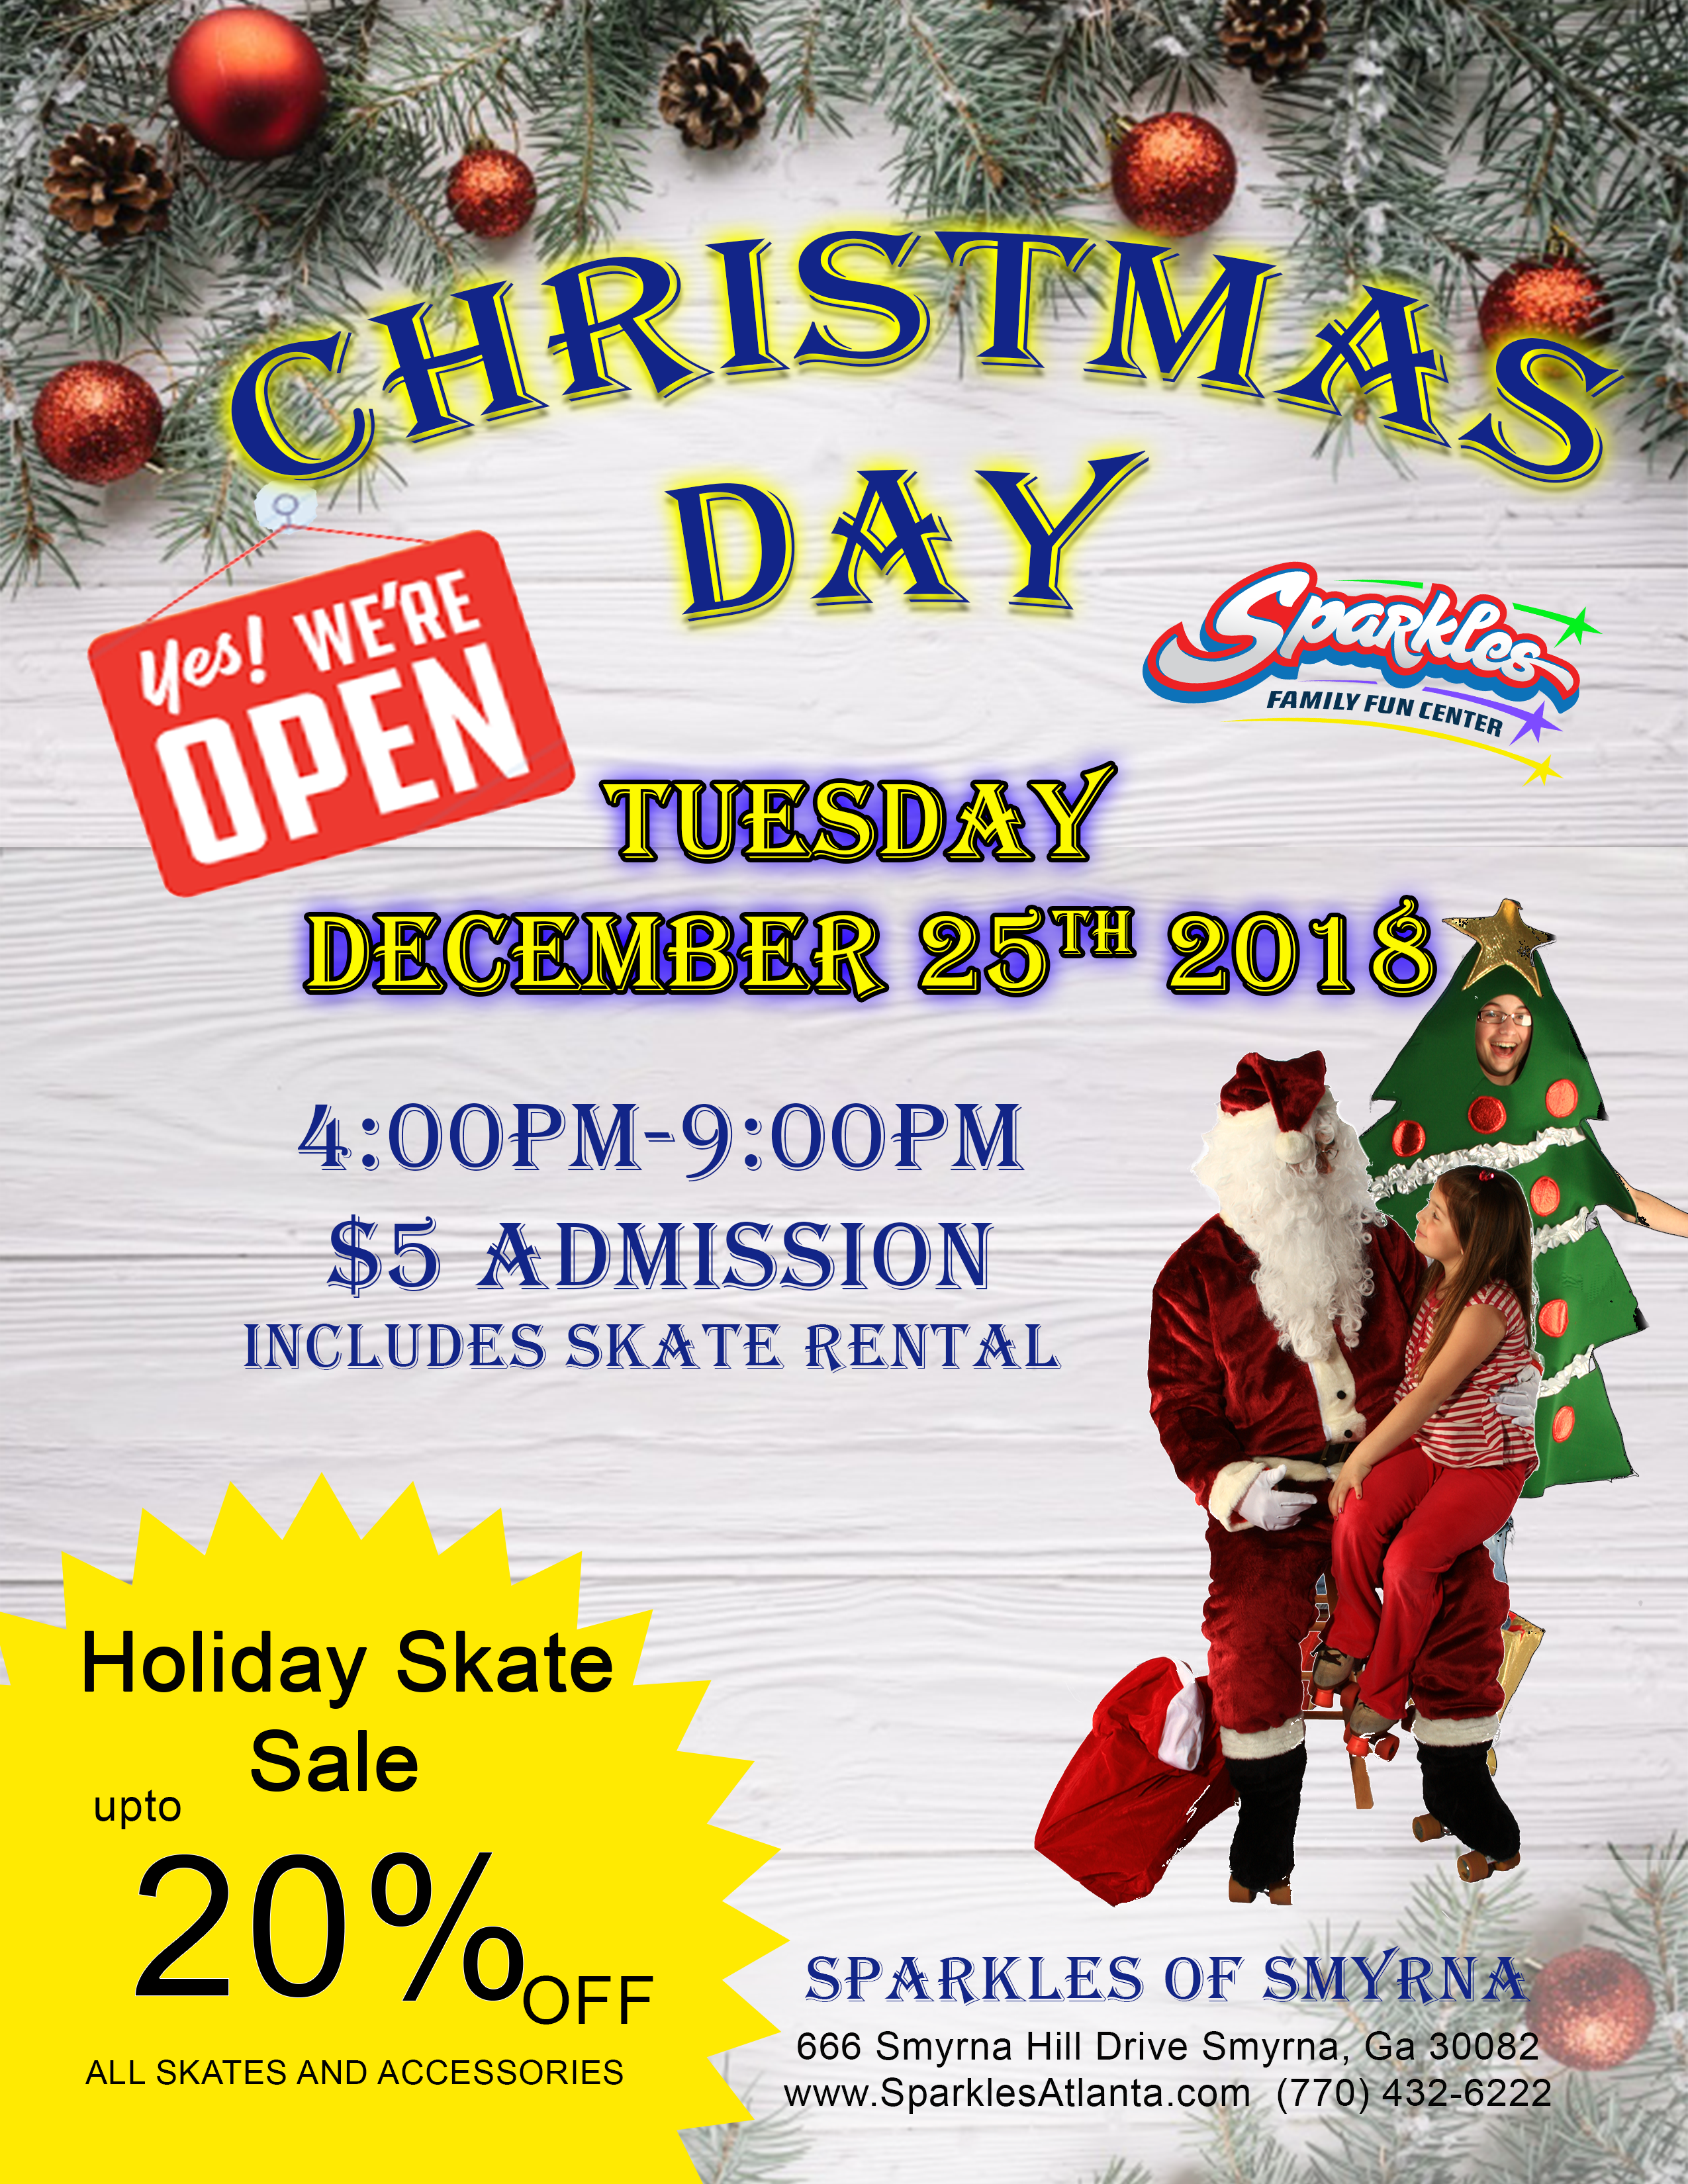 Open Christmas Day